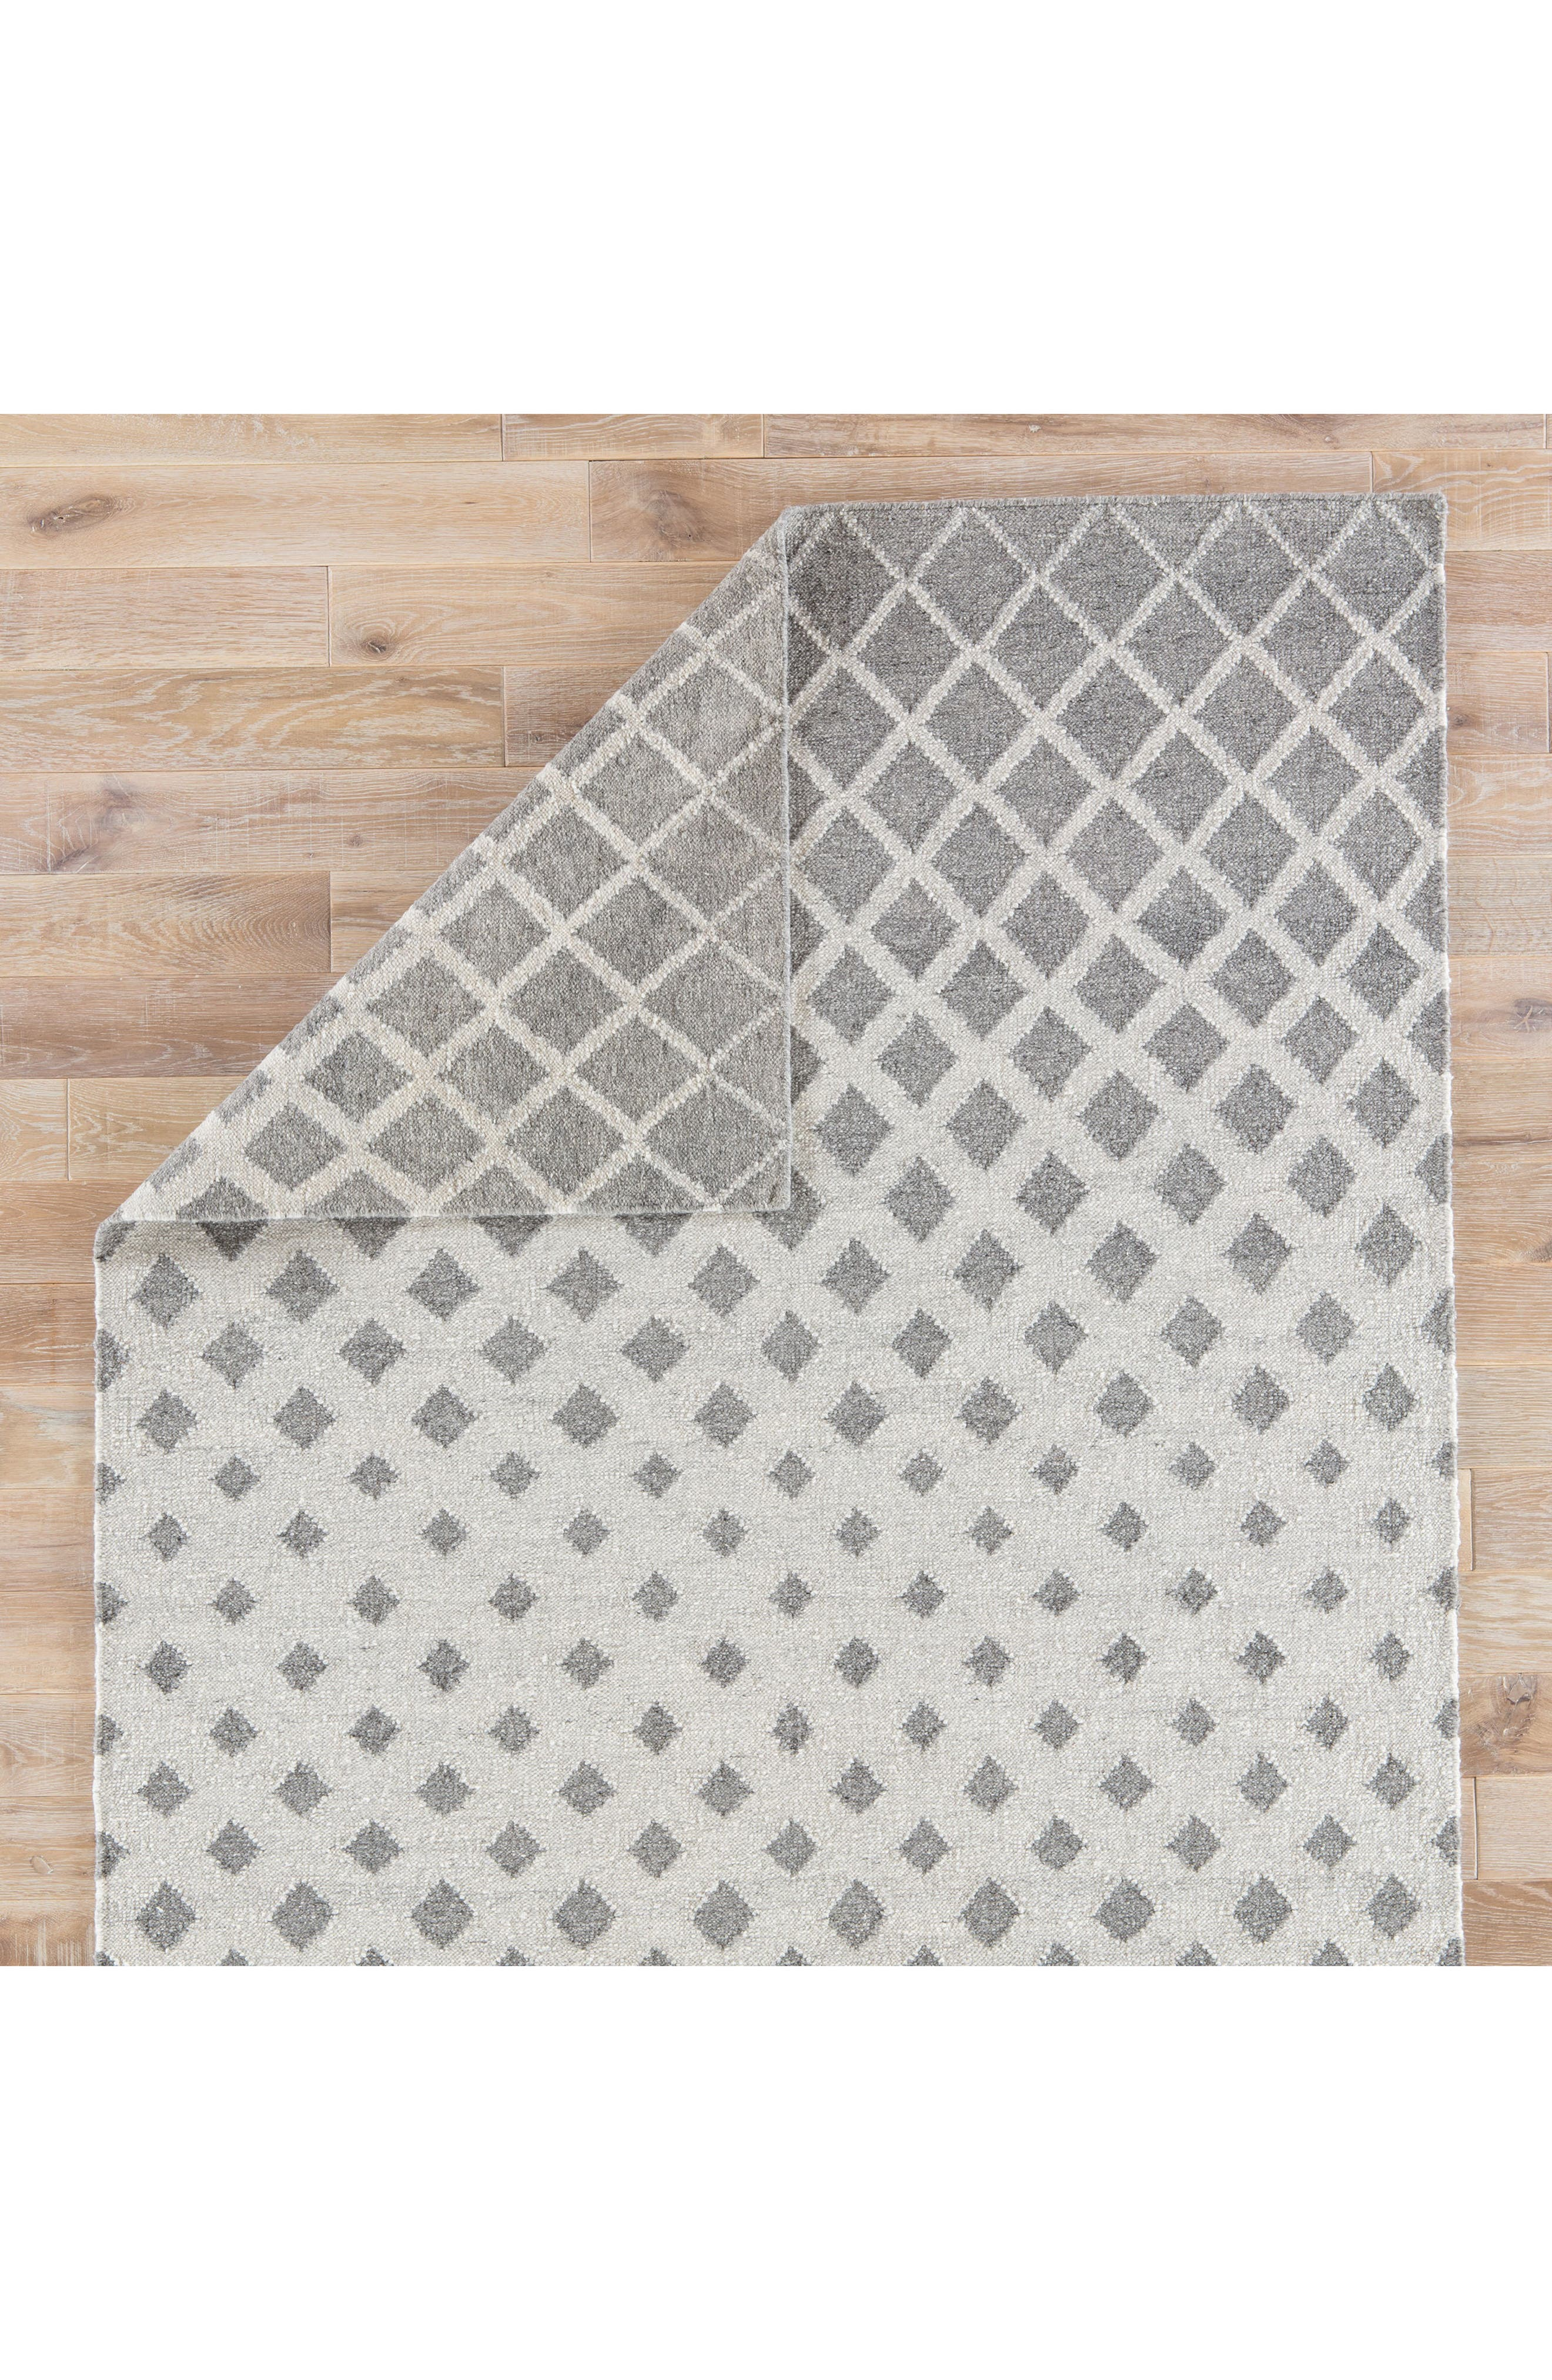 Pyramid Blocks Rug,                             Alternate thumbnail 4, color,                             099